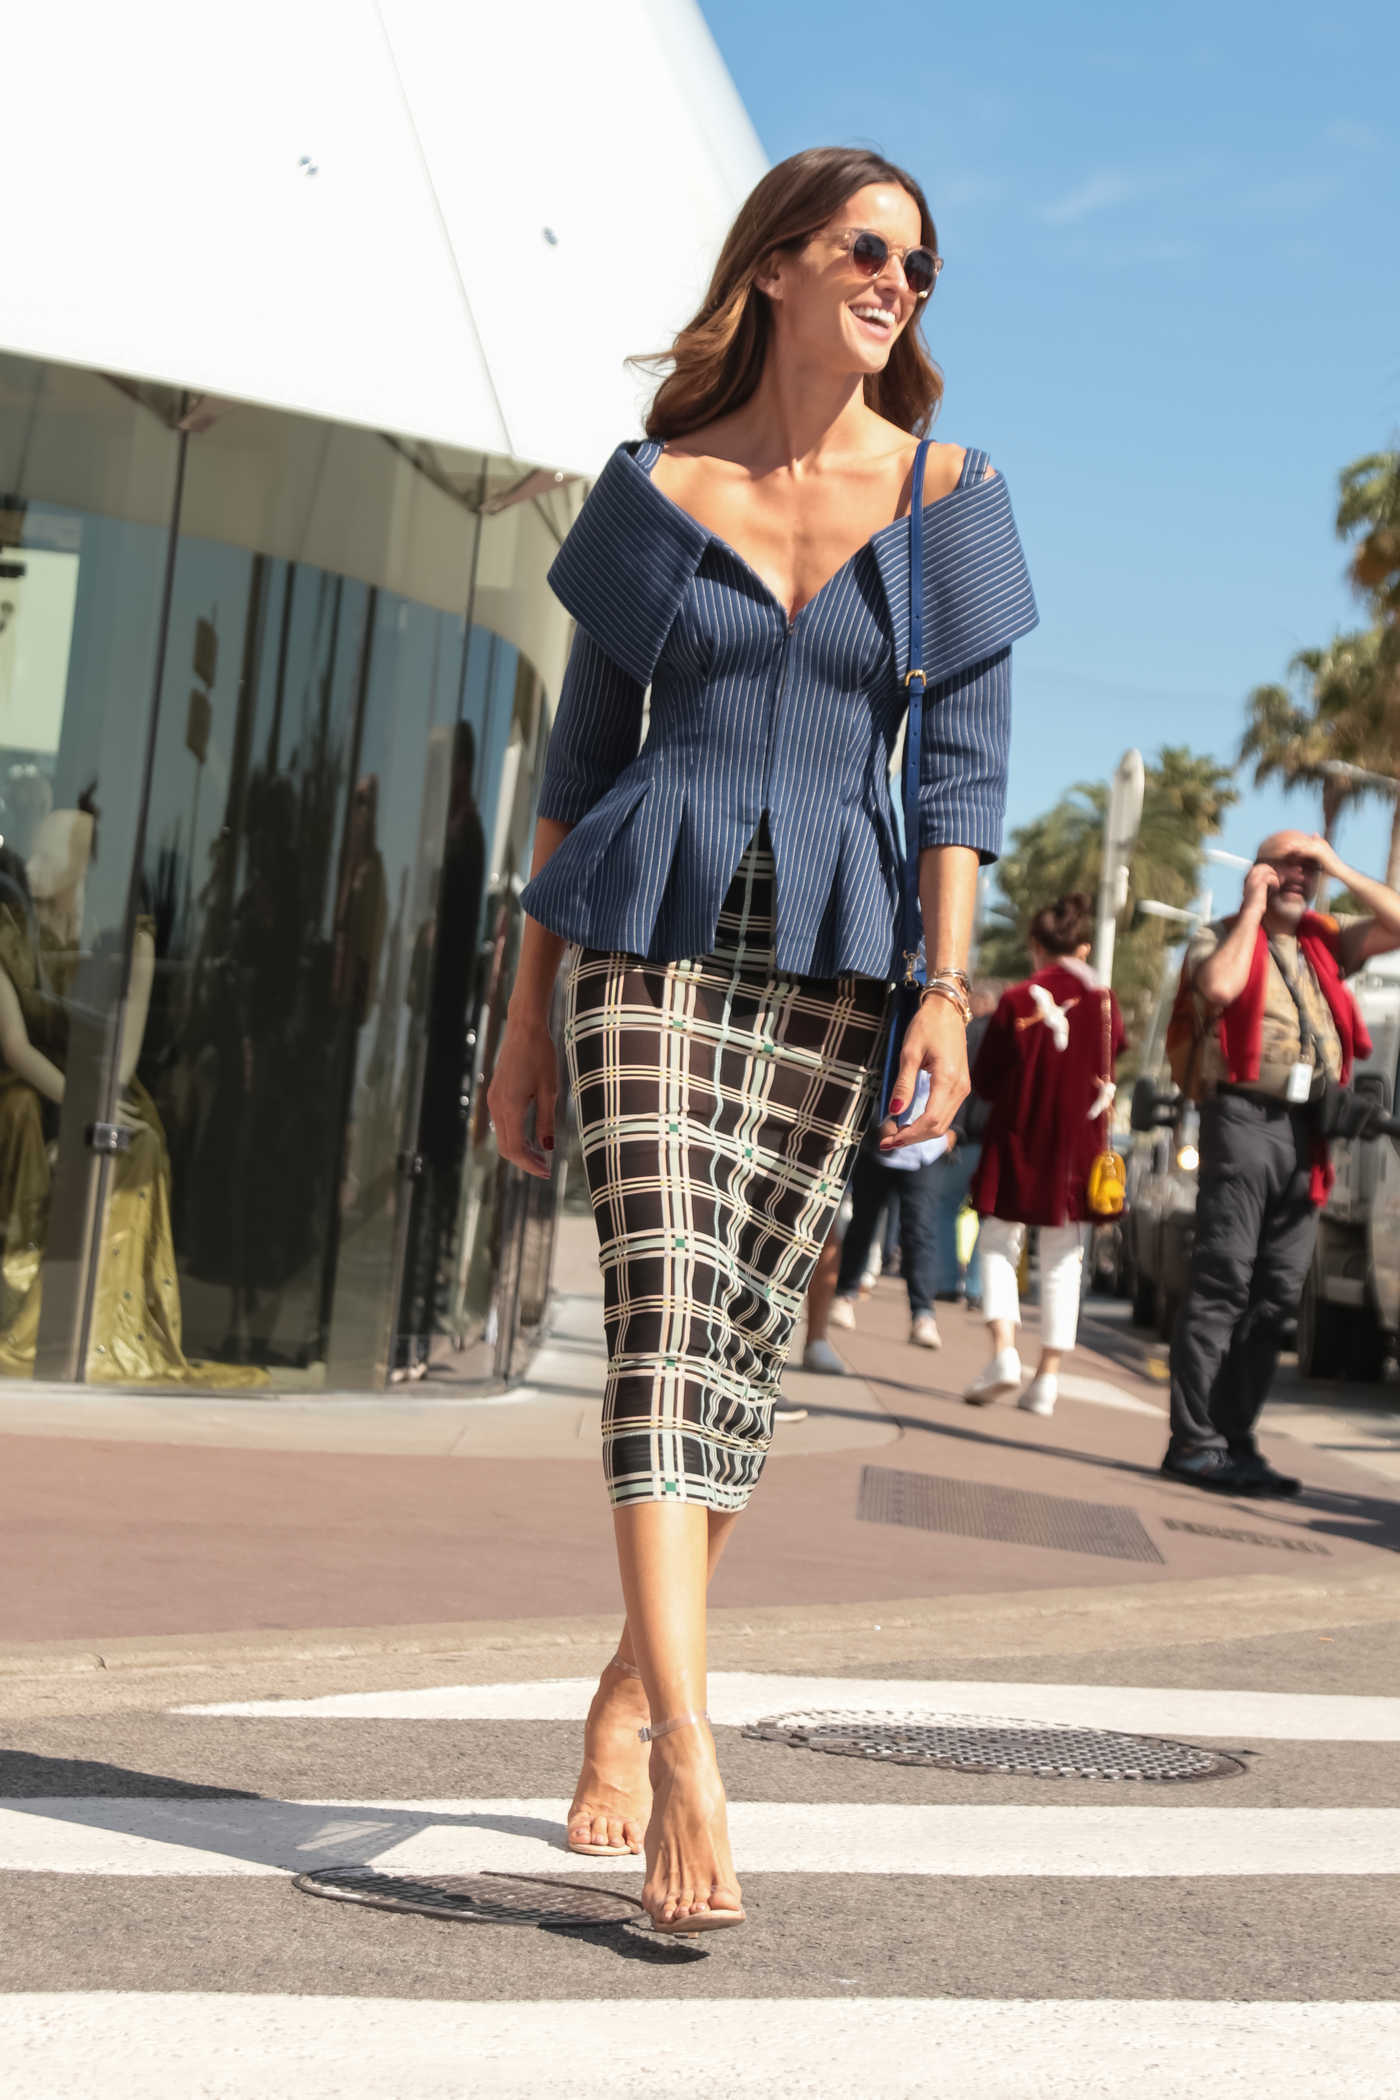 Izabel Goulart Was Seen Out in Cannes During the 71st Cannes Film Festival 05/15/2018